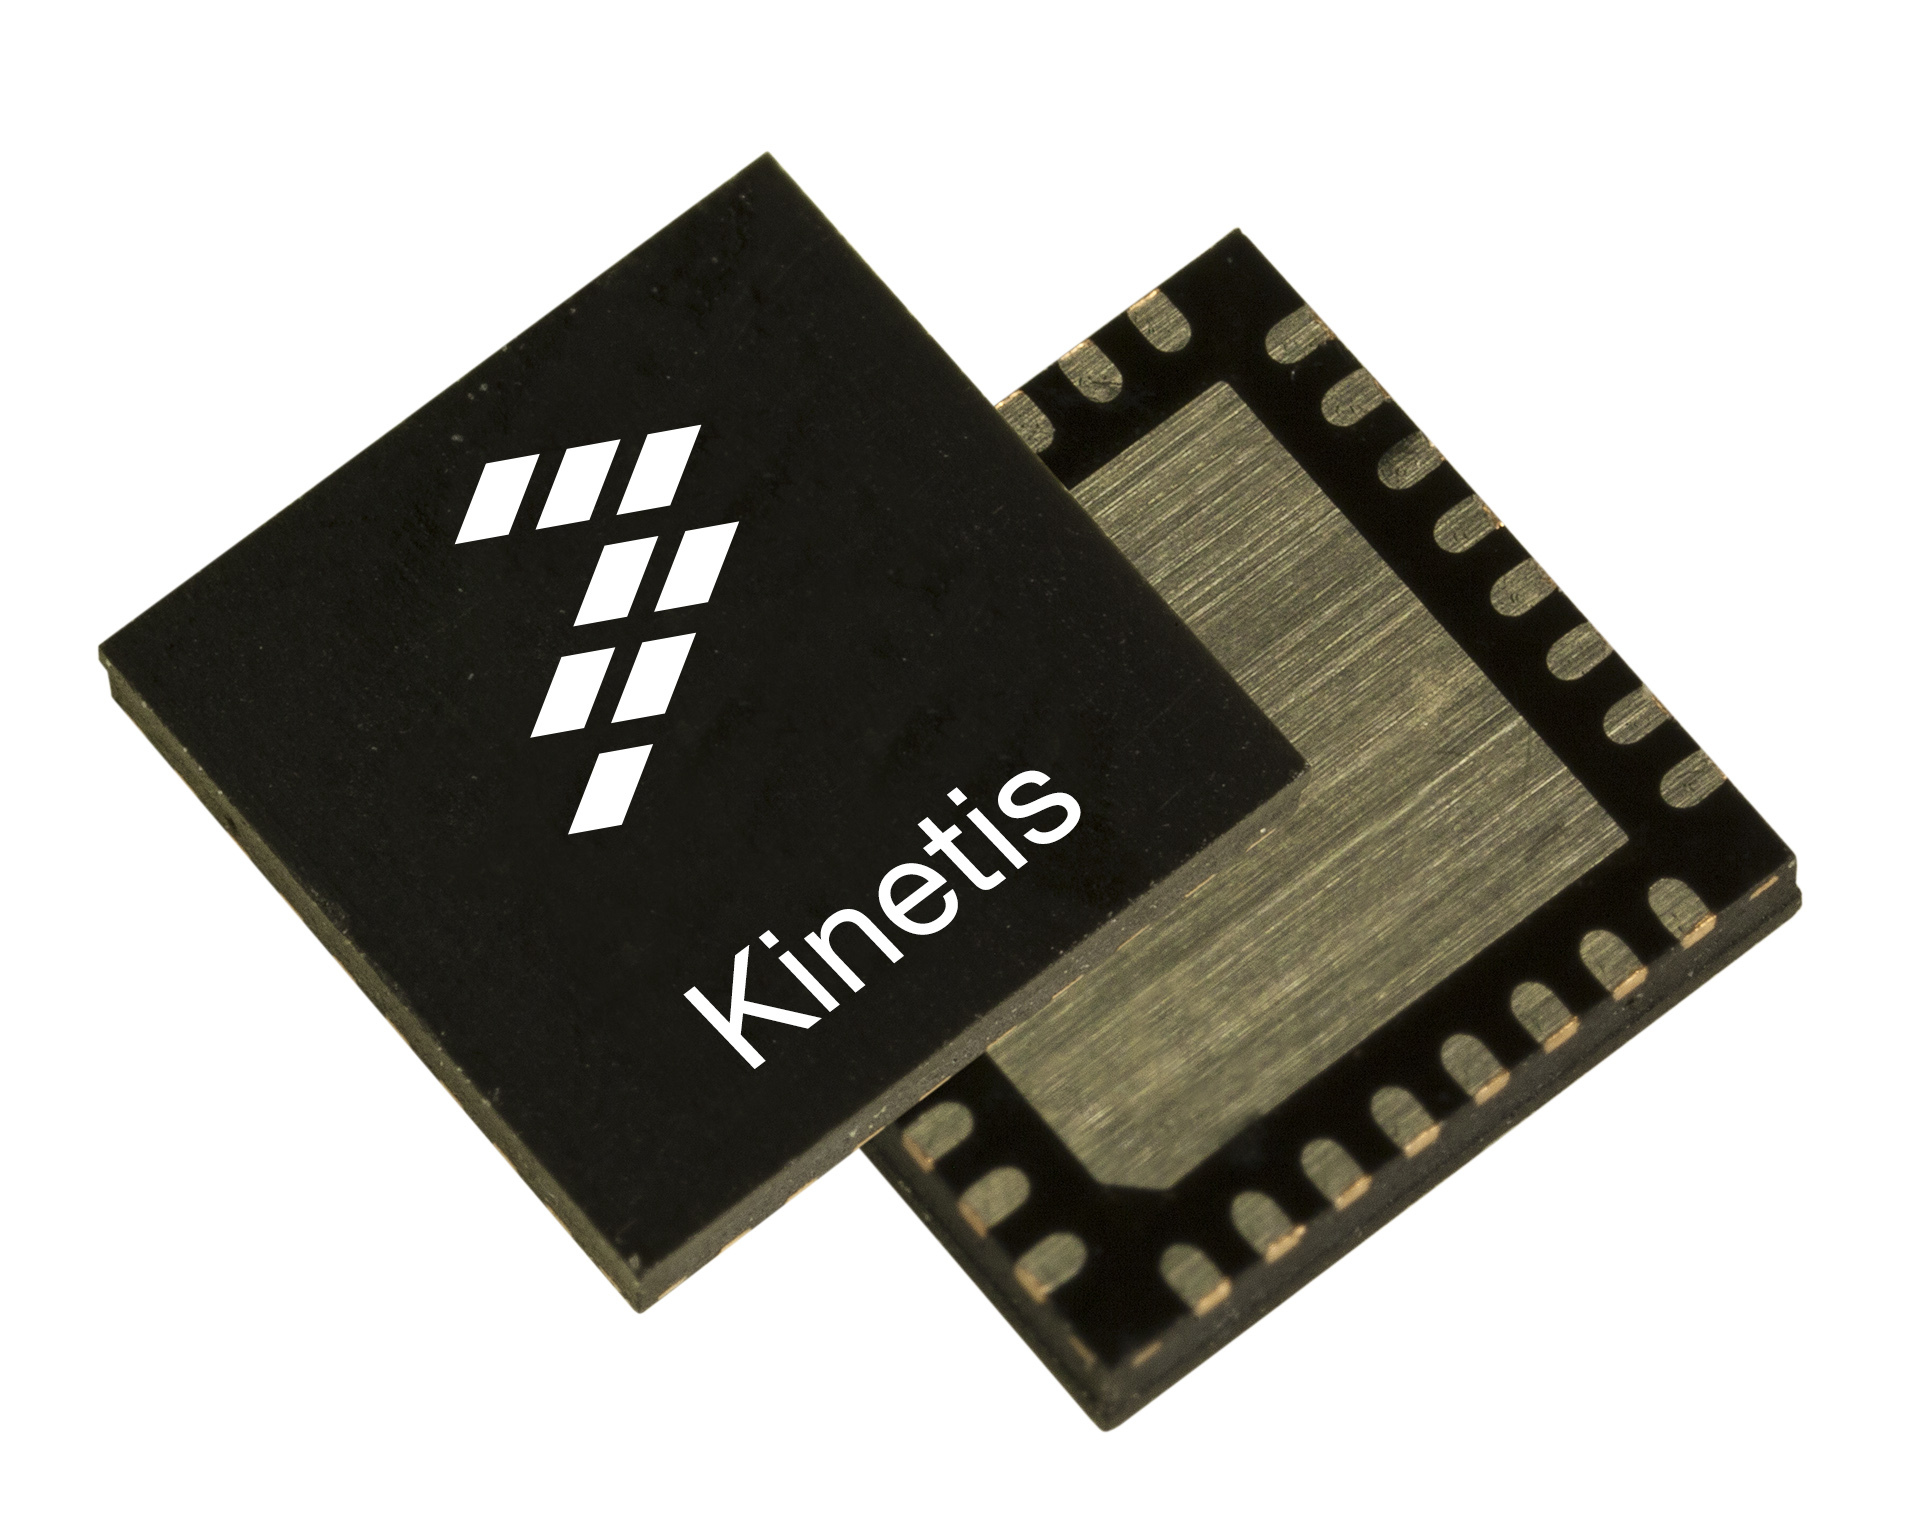 Tiny Kinetis Kl02 Microcontrollers From Freescale Now Broadly Microcontroller Detecting Open Circuit Very Low Power Electrical Full Size